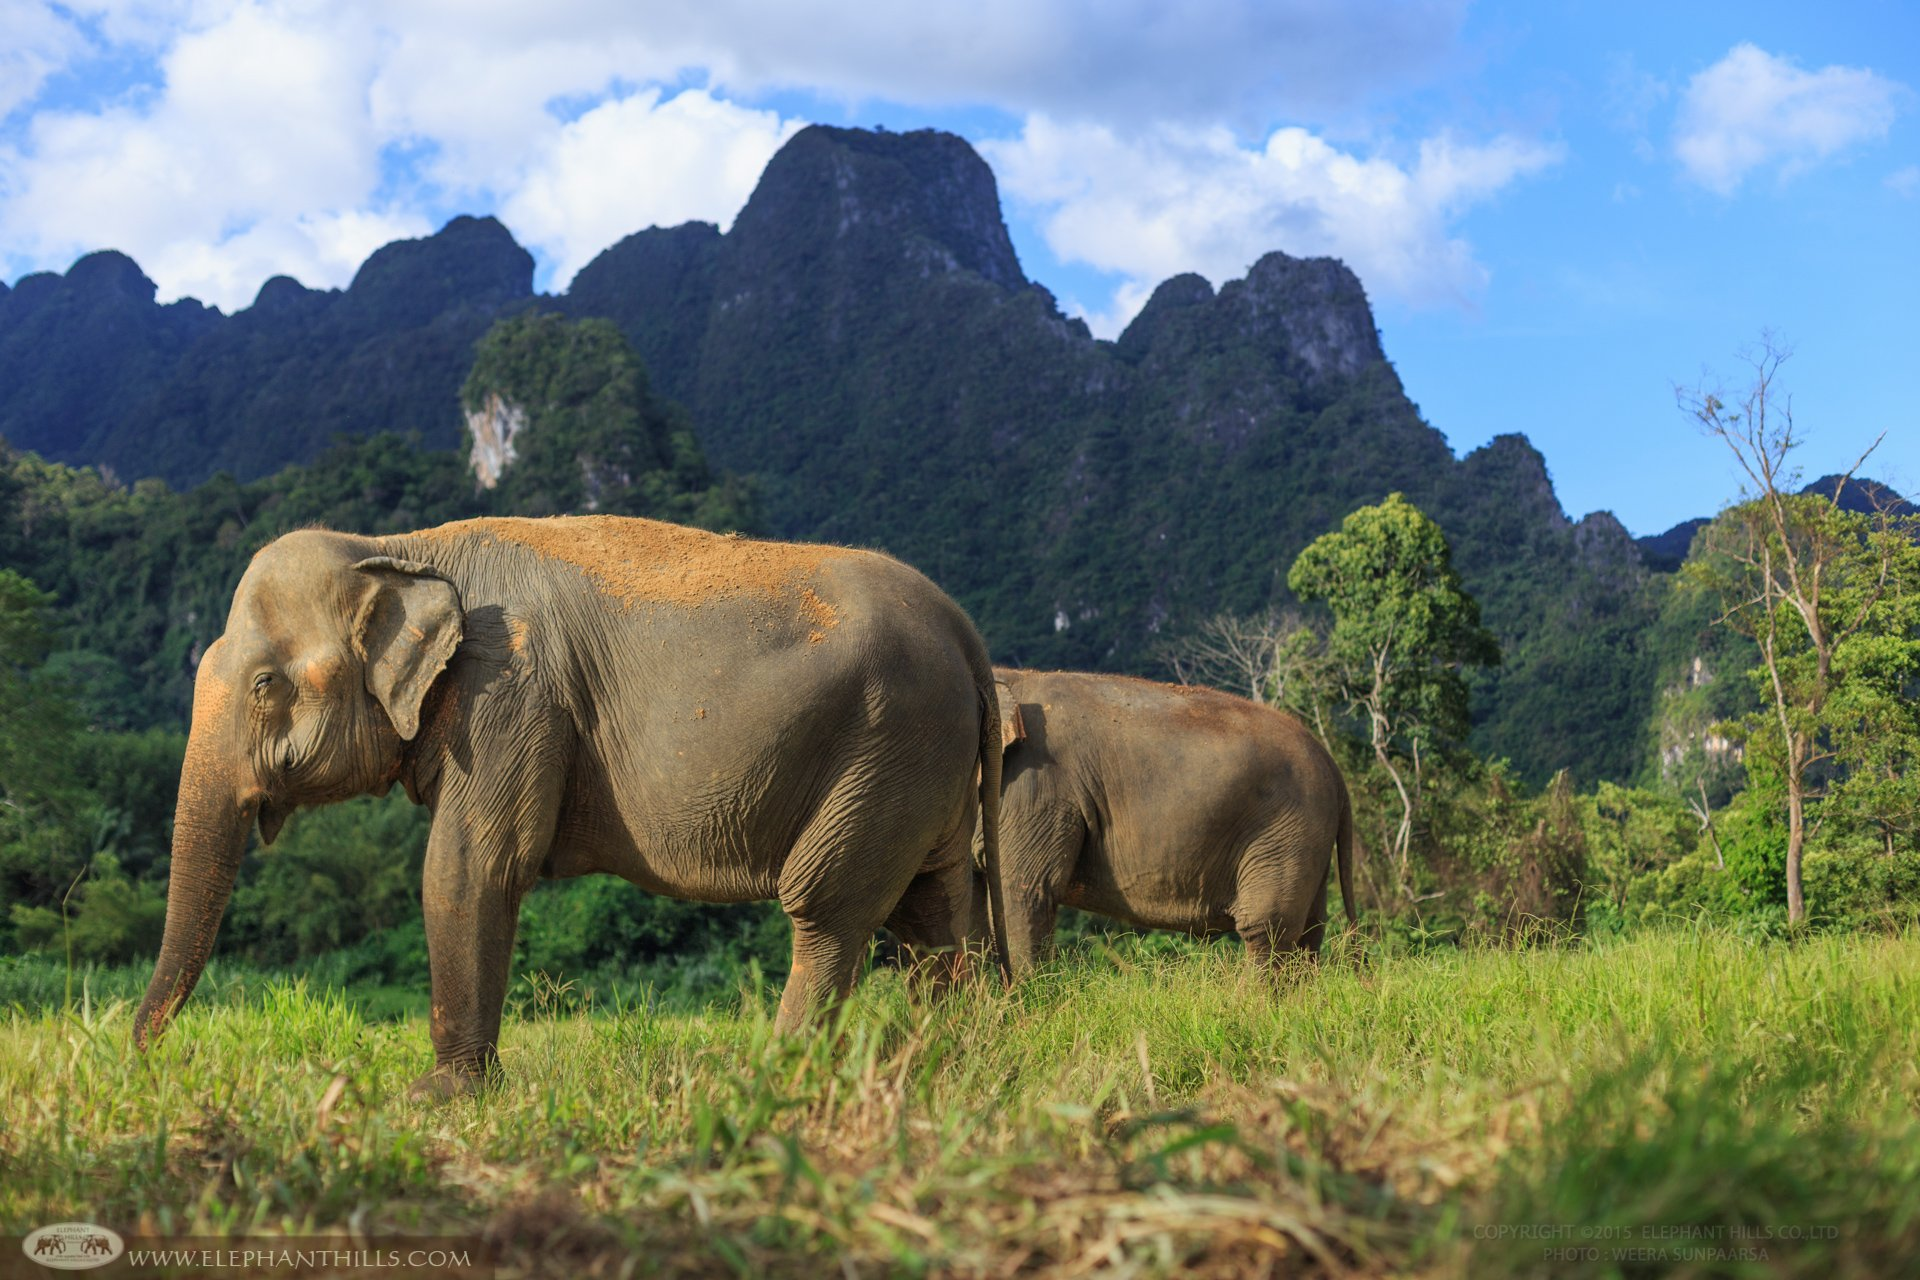 The oldest elephant at Elephant Hills is 75 years old, named Nok Yoong